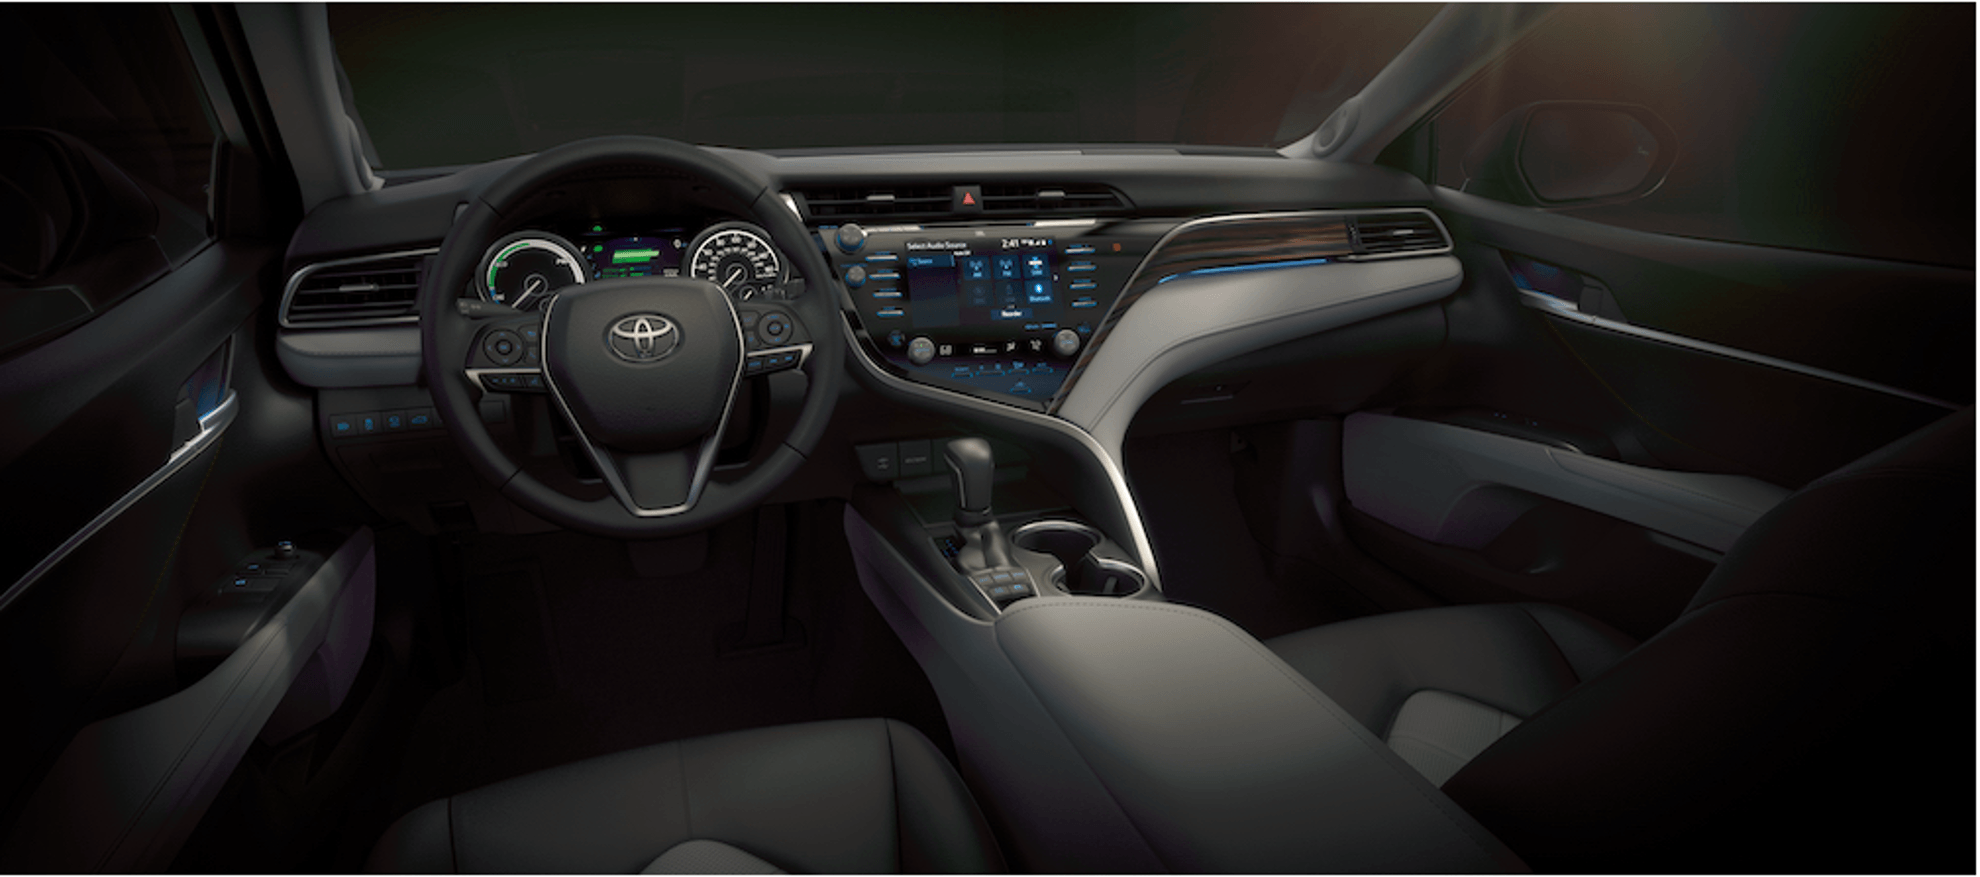 2018 Toyota Camry Interior at Ken Shaw Toyota in Toronto